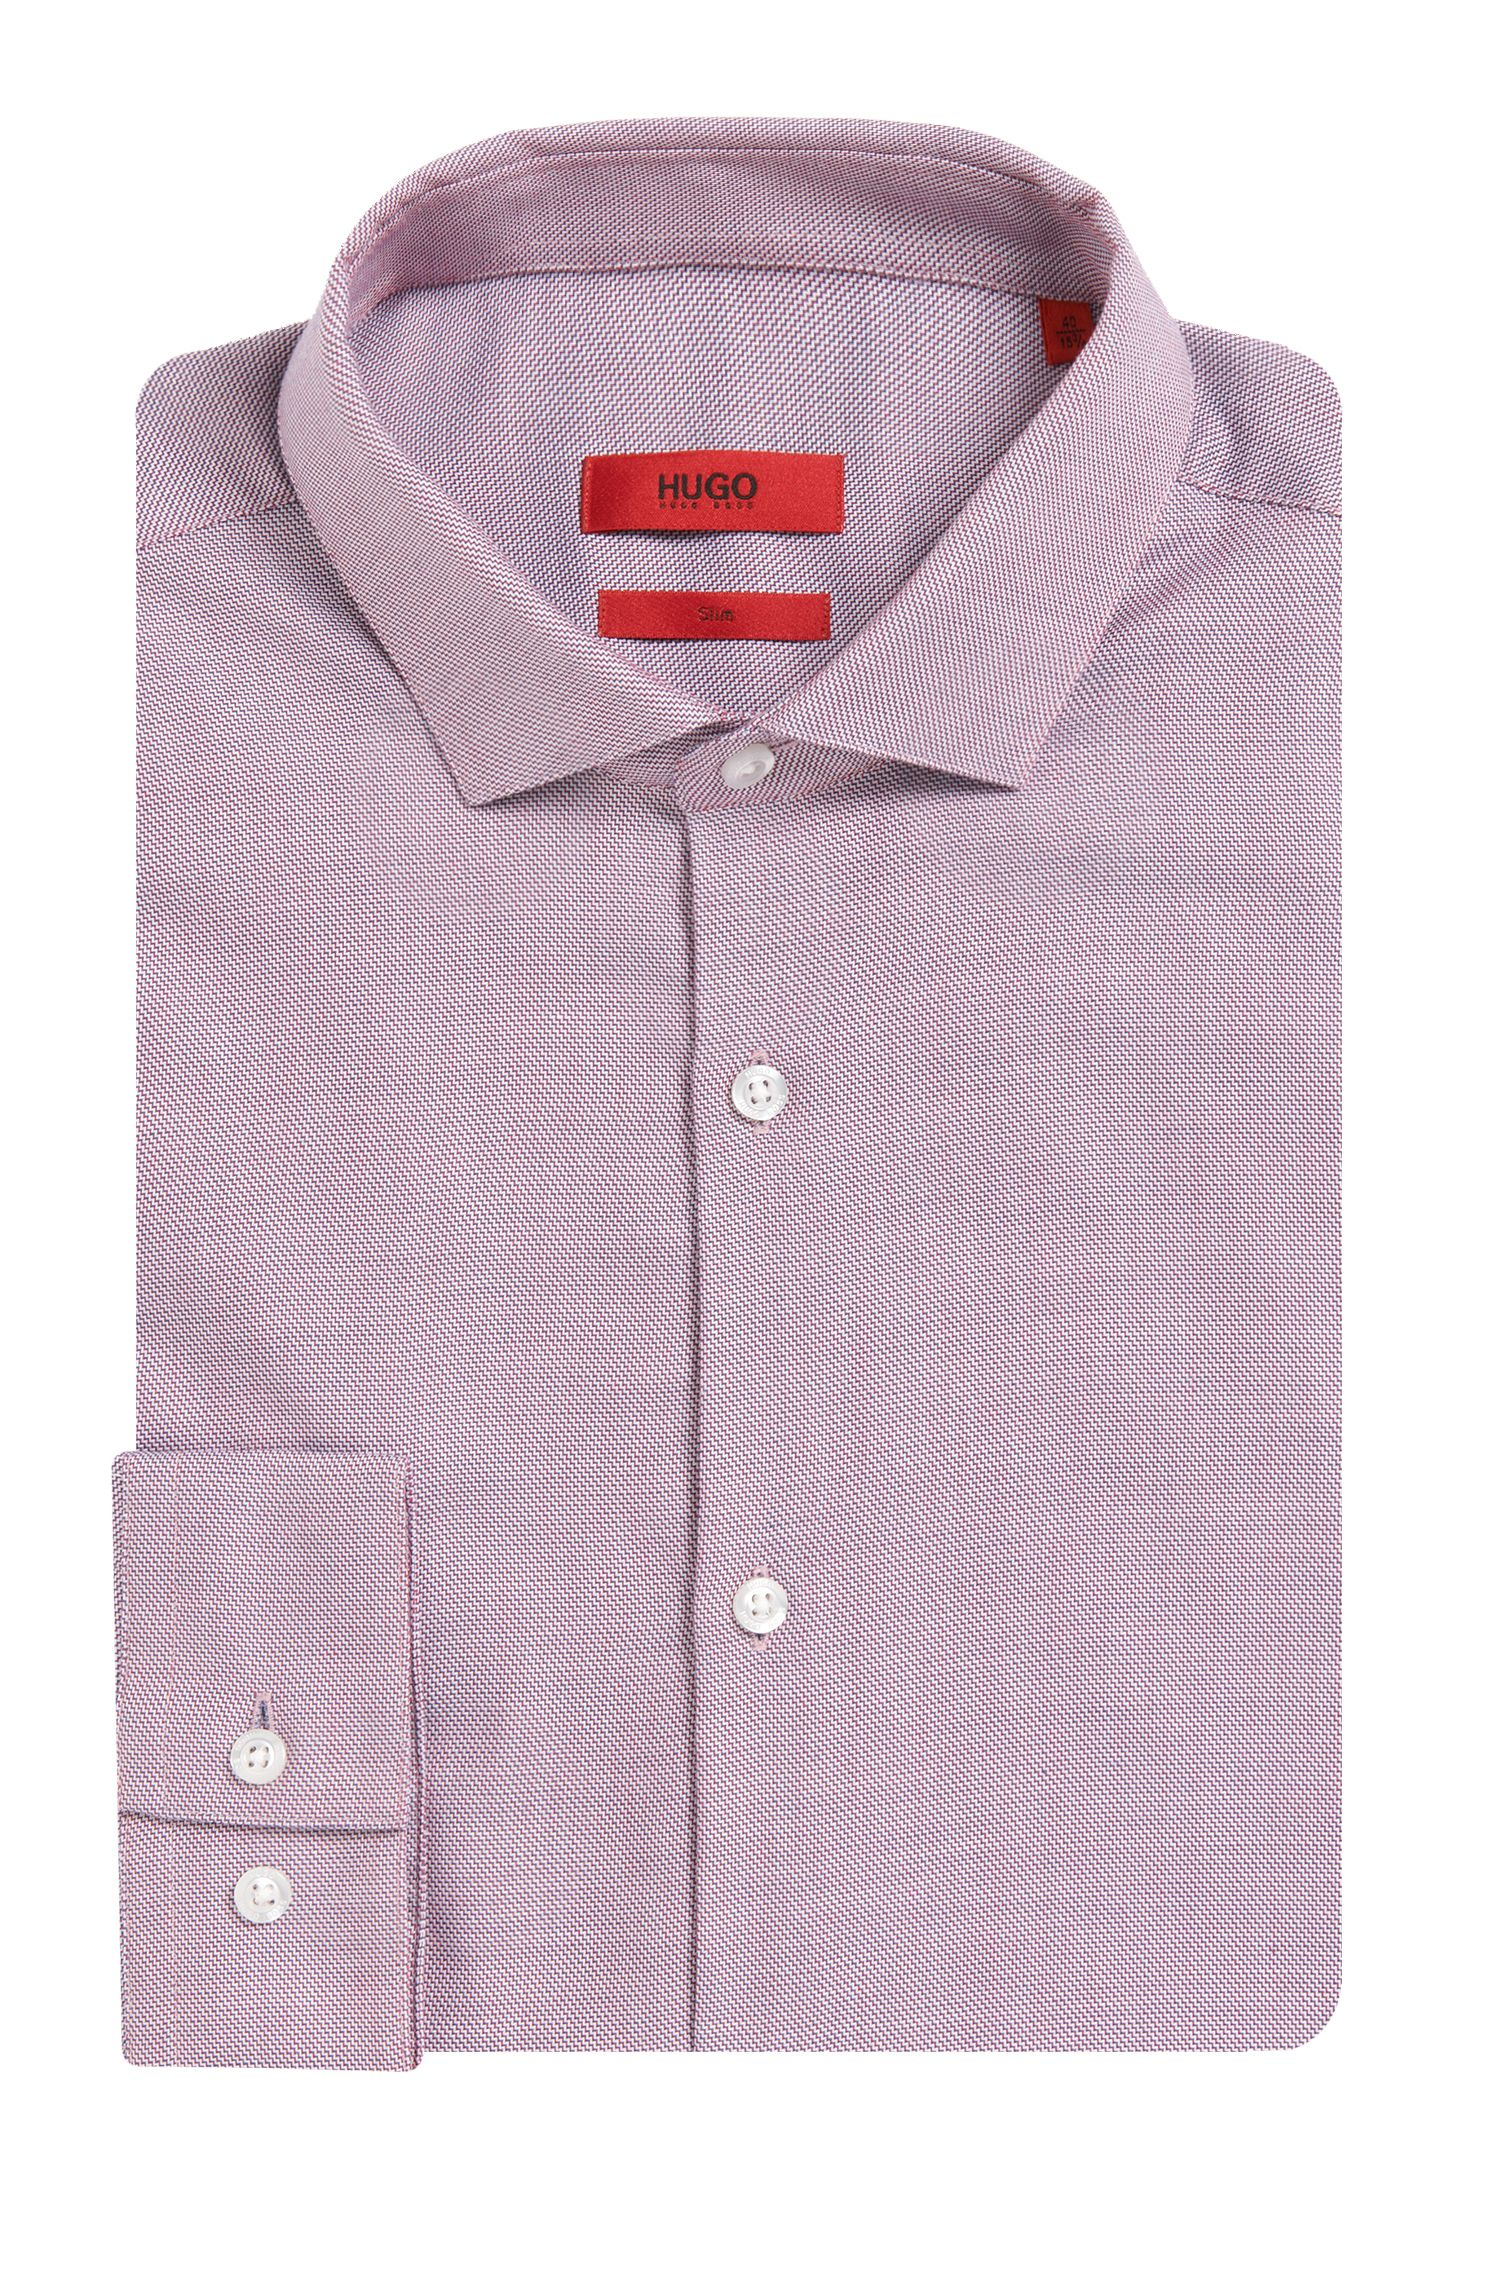 'Erondo' | Slim Fit, Cotton Dress Shirt